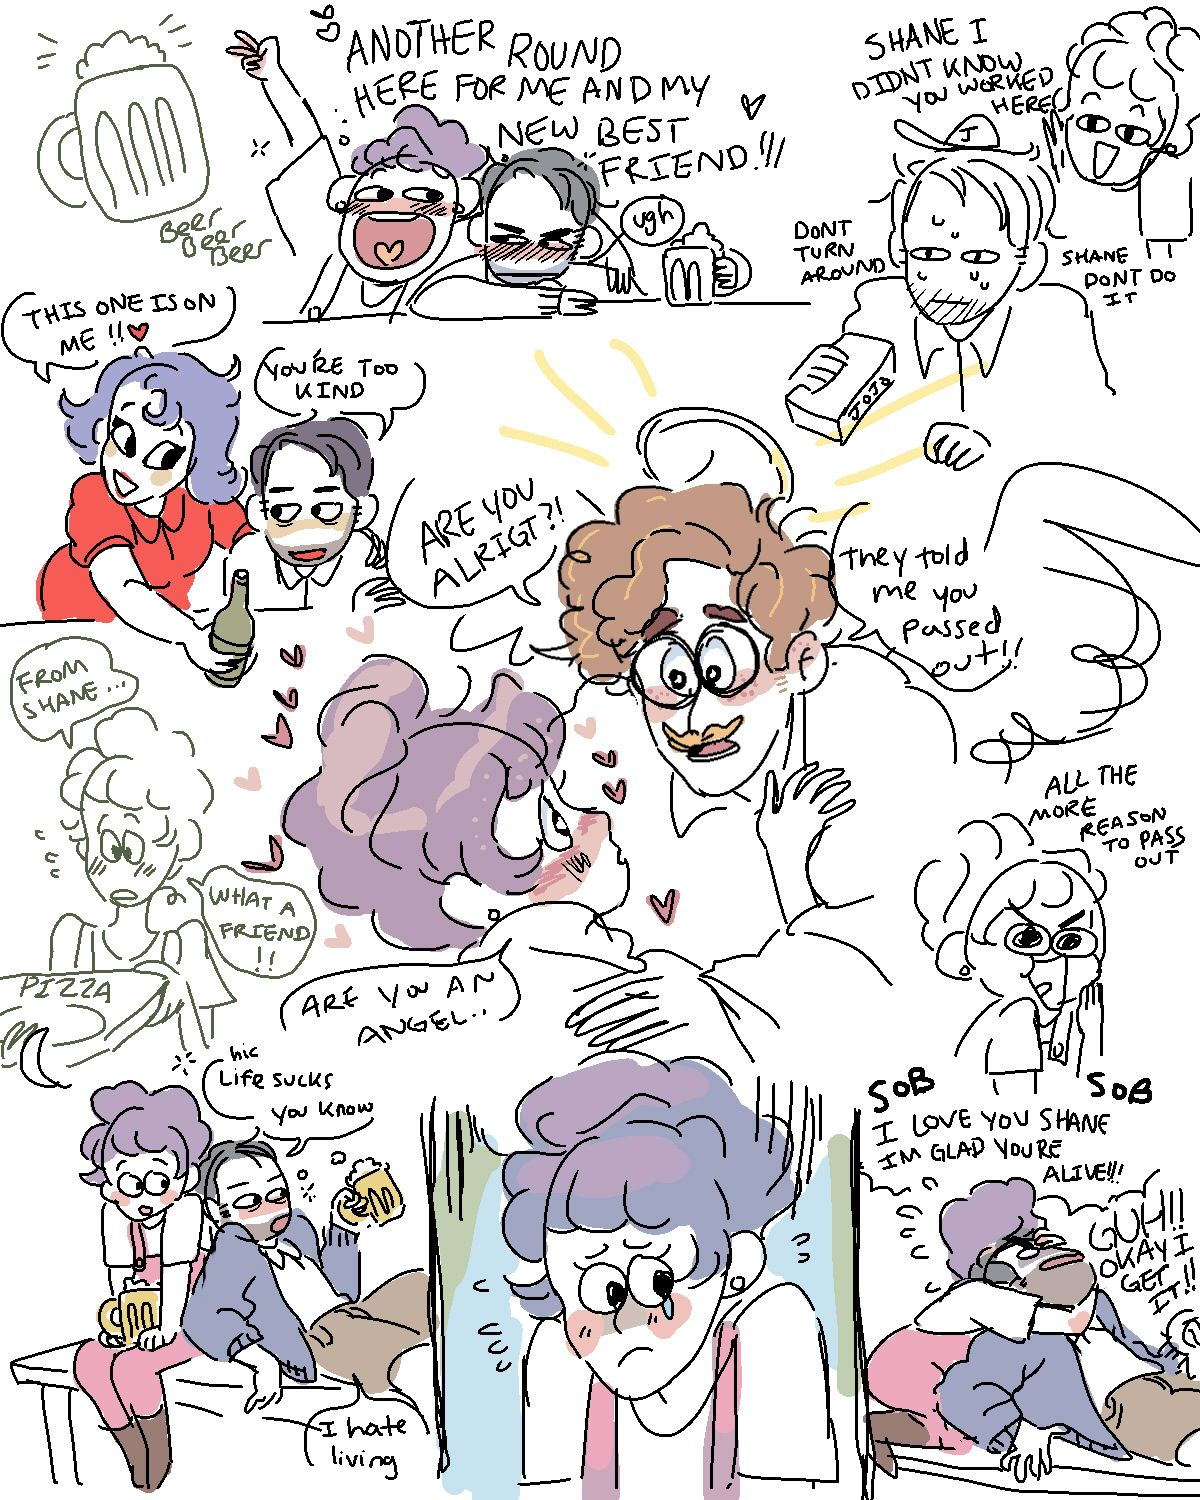 stardew valley dump i like harvey and shane is my best